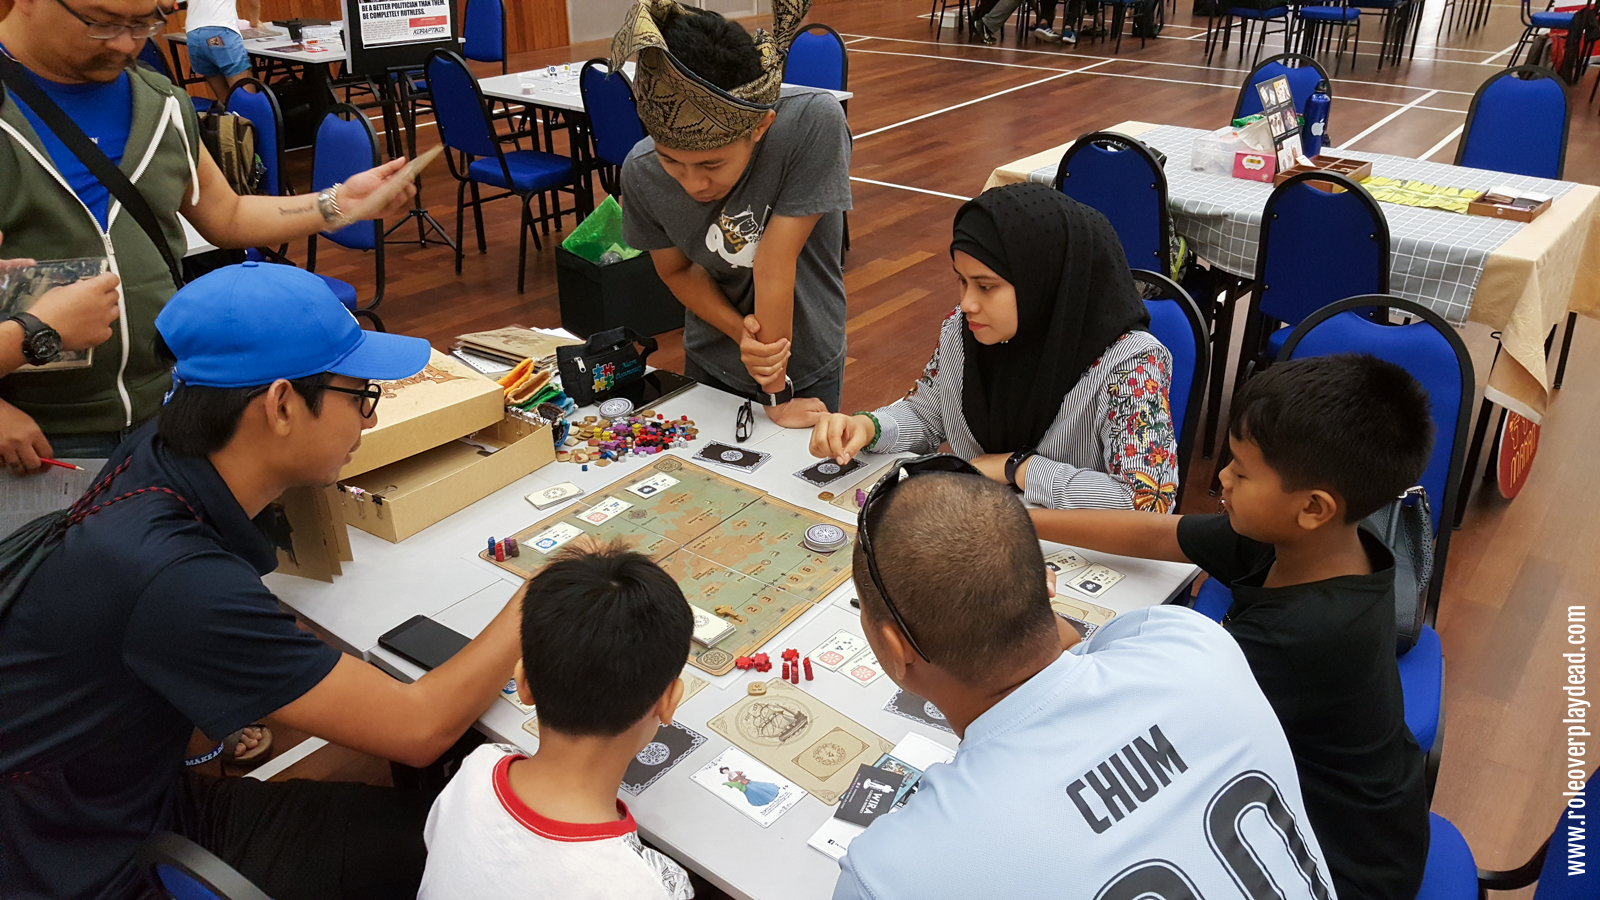 The main floor showcased many local board games, including this beautifully illustrated prototype for Empayar Selat Nusantara, set in a Southeast Asian archipelago by Abdul Aziz.